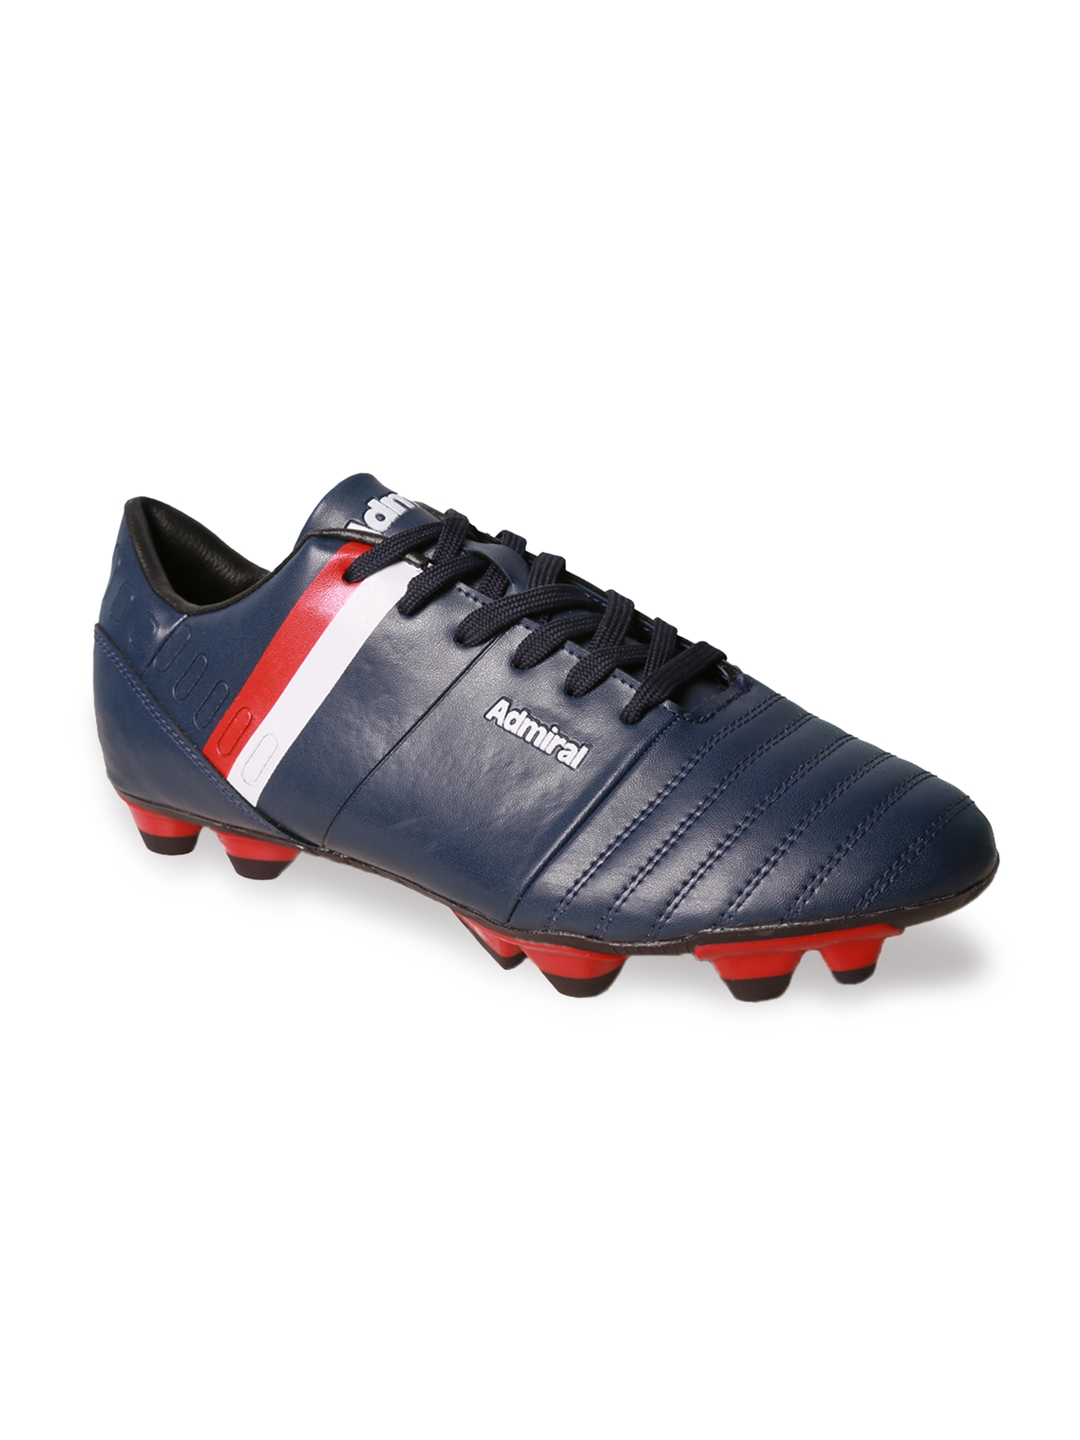 3d6d7799e Buy Admiral Men Navy Blue Football Shoes - Sports Shoes for Men 2107124